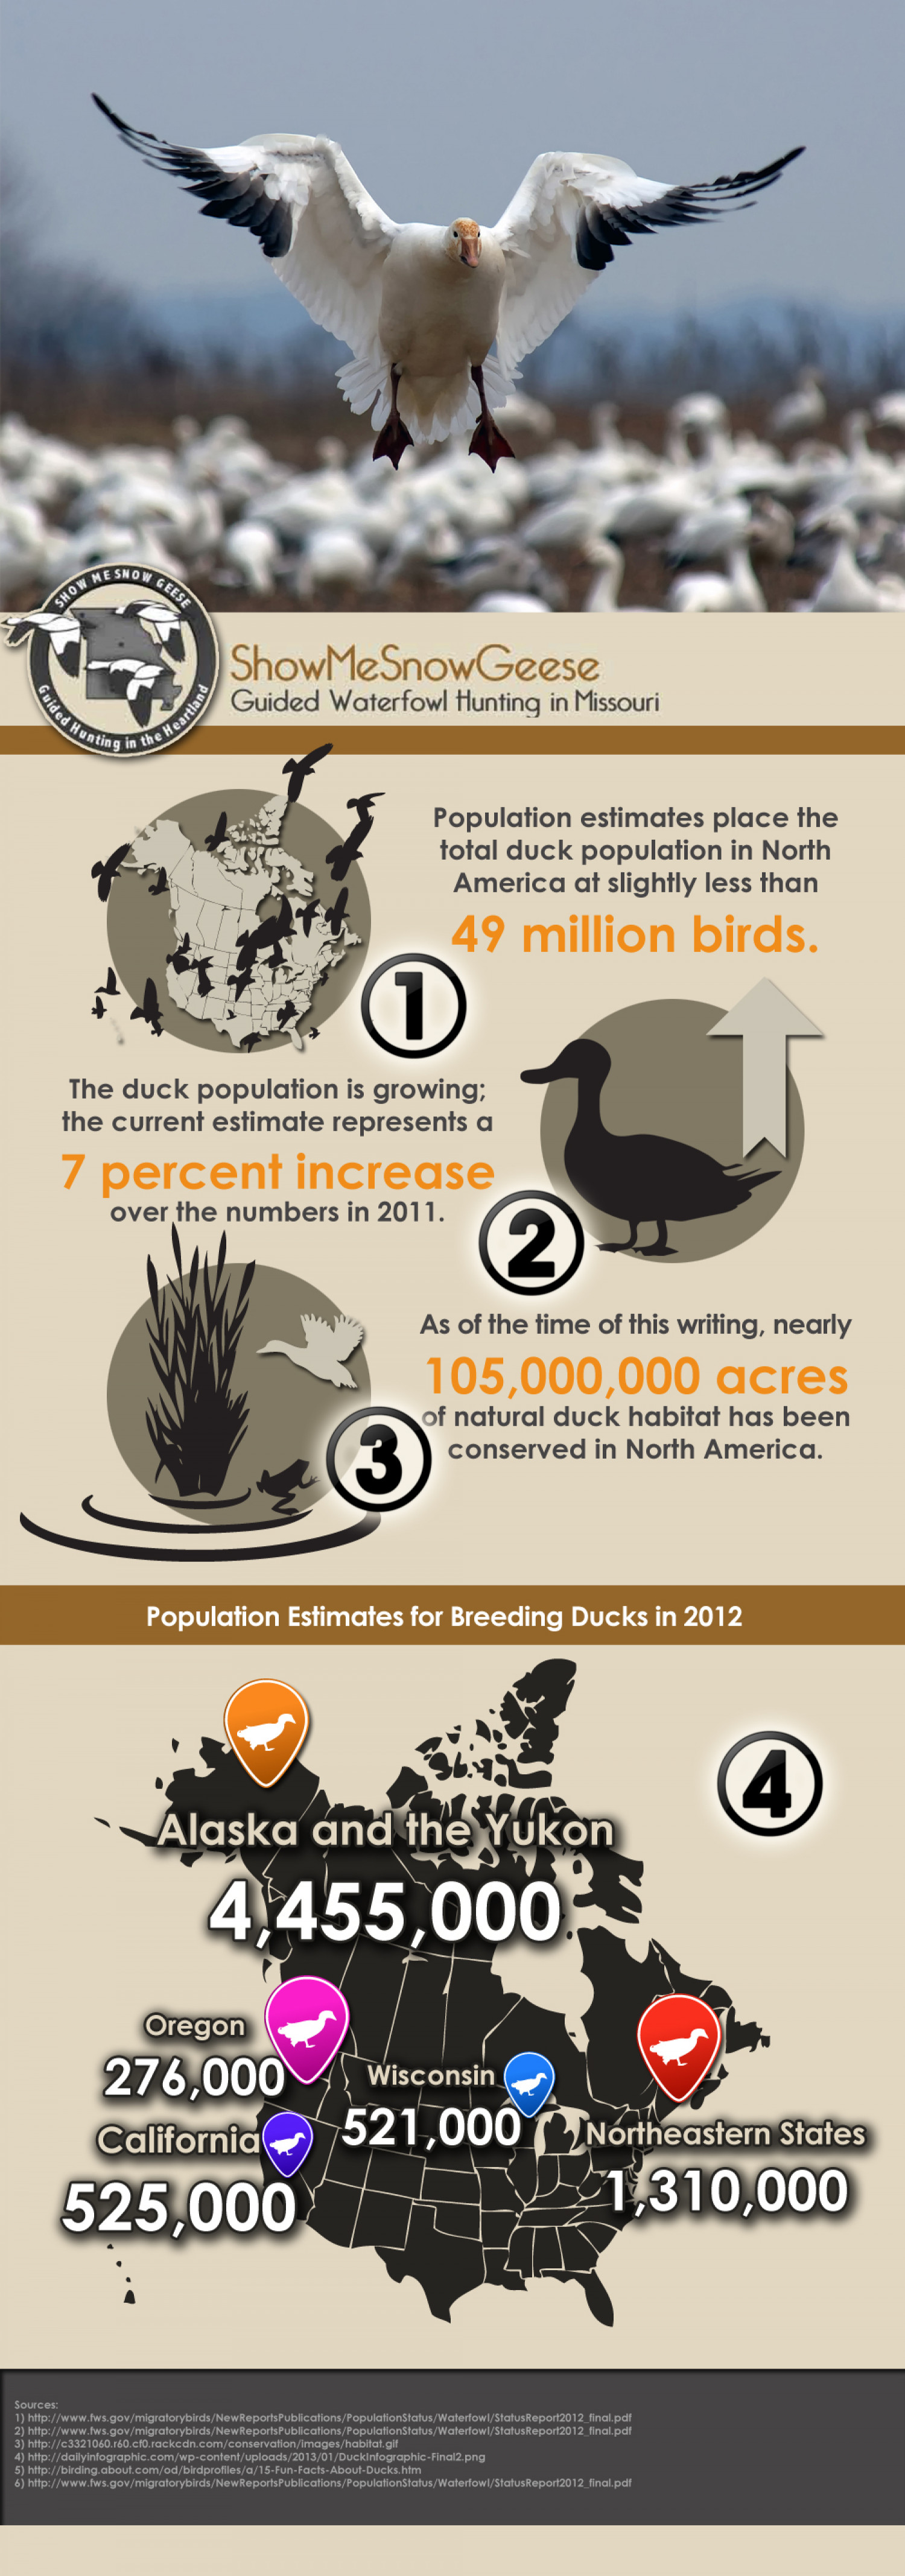 Interesting facts about geese Infographic